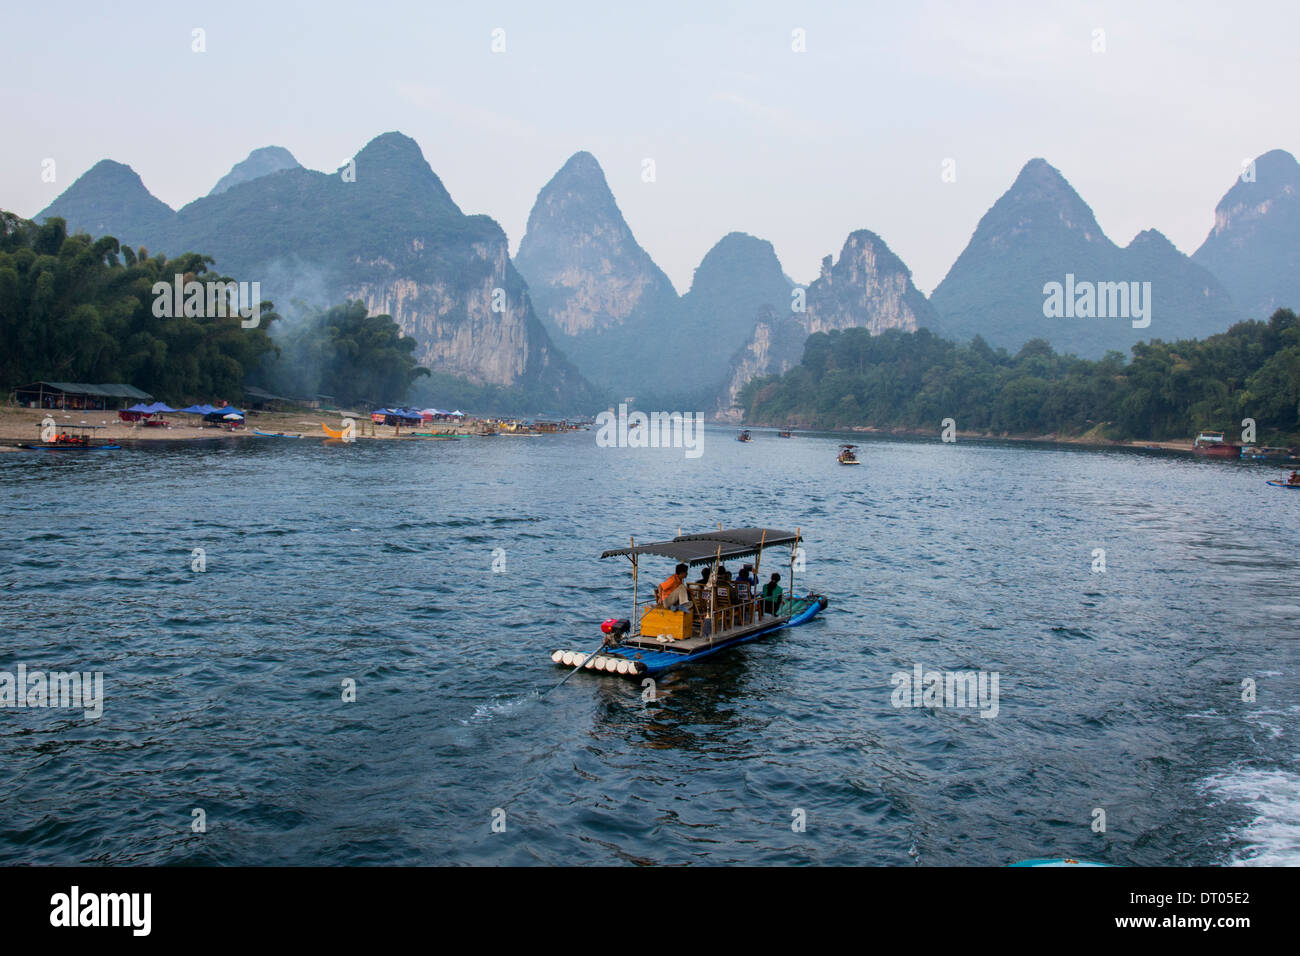 China, Yangshuo County, Bamboo rafts on the Yulong River Karst formations Stock Photo